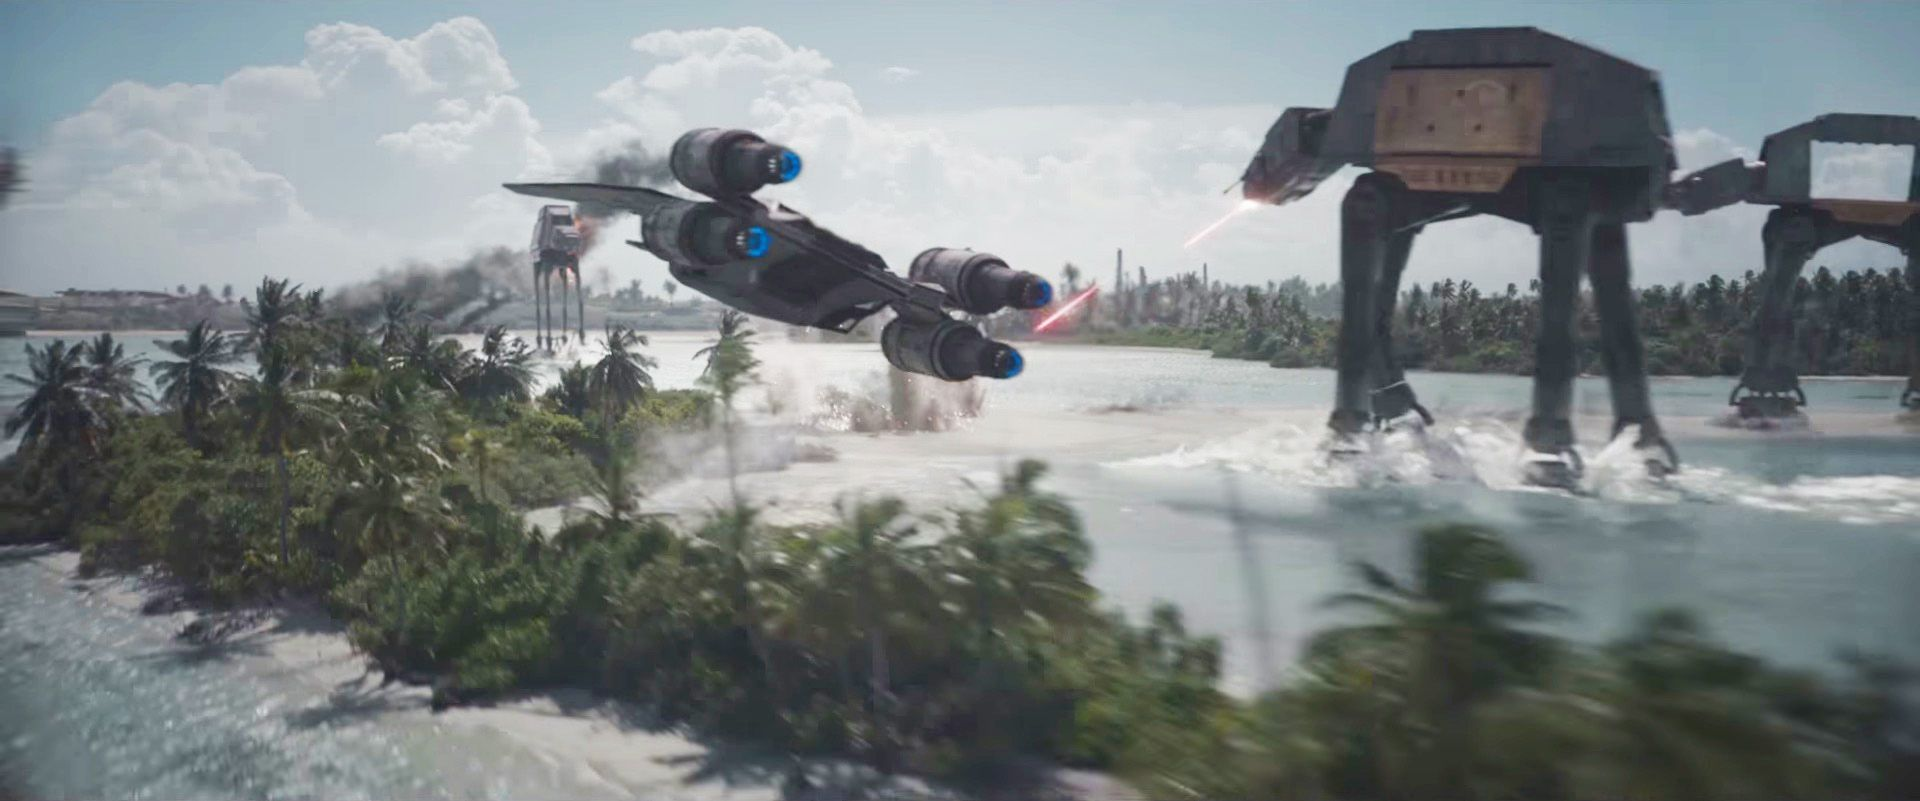 Rogue One: A Star Wars Story's Gillette ad gives a closer look at Rebel life